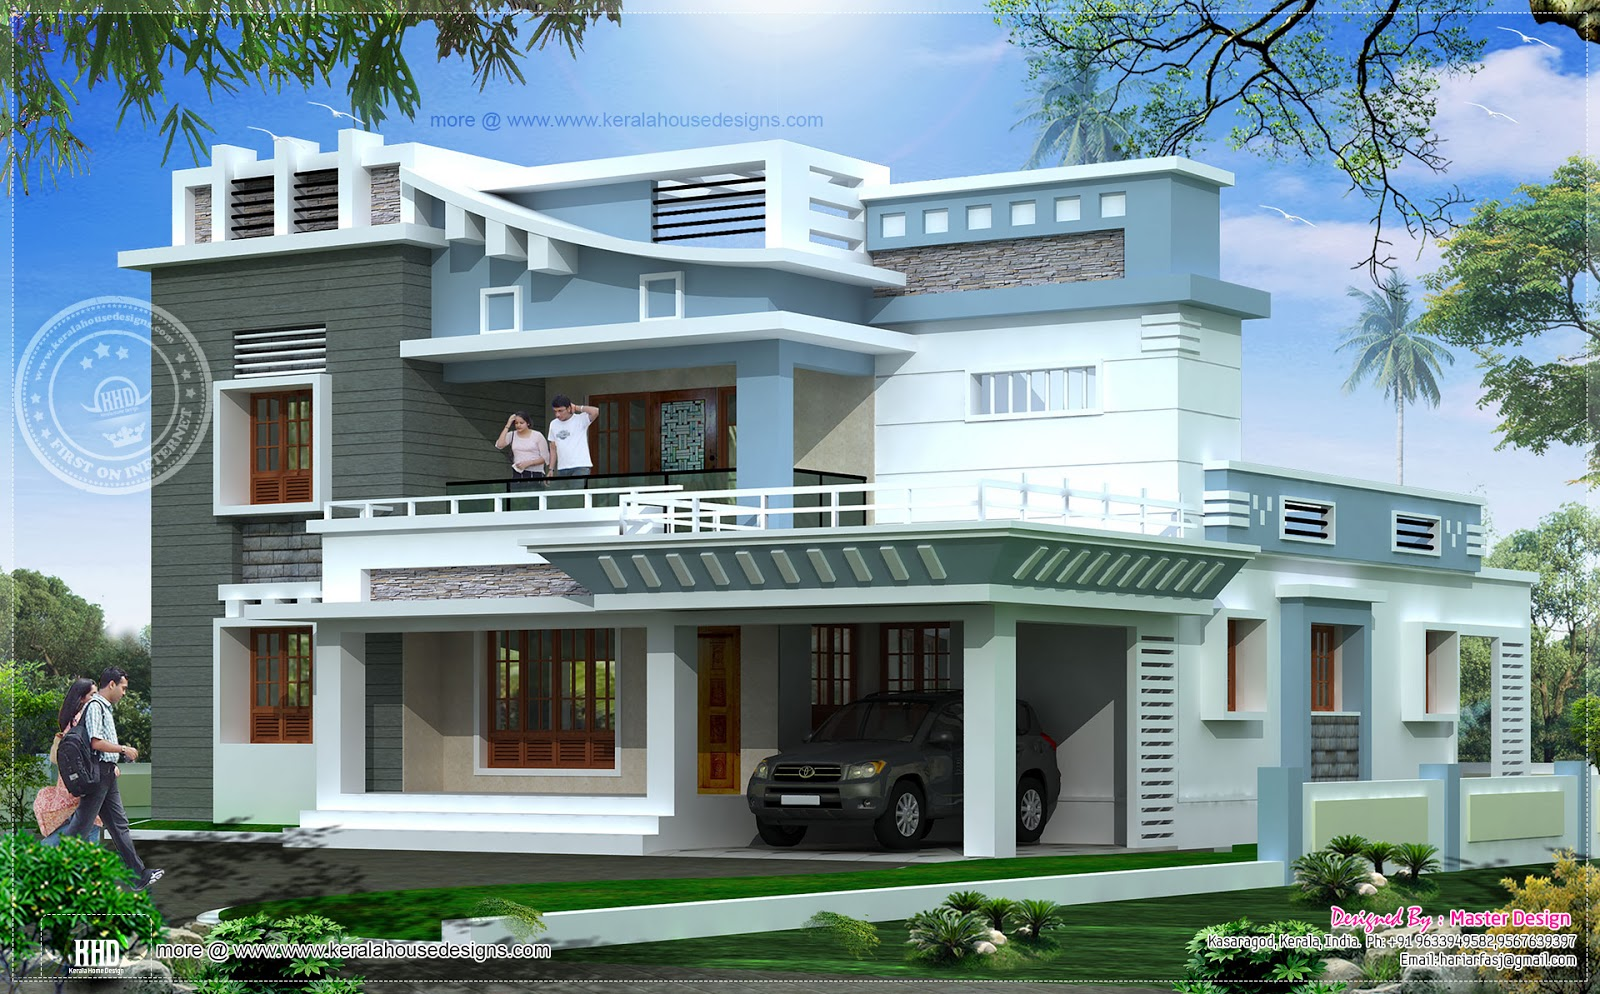 2547 square feet exterior home elevation house design plans for Exterior house design app